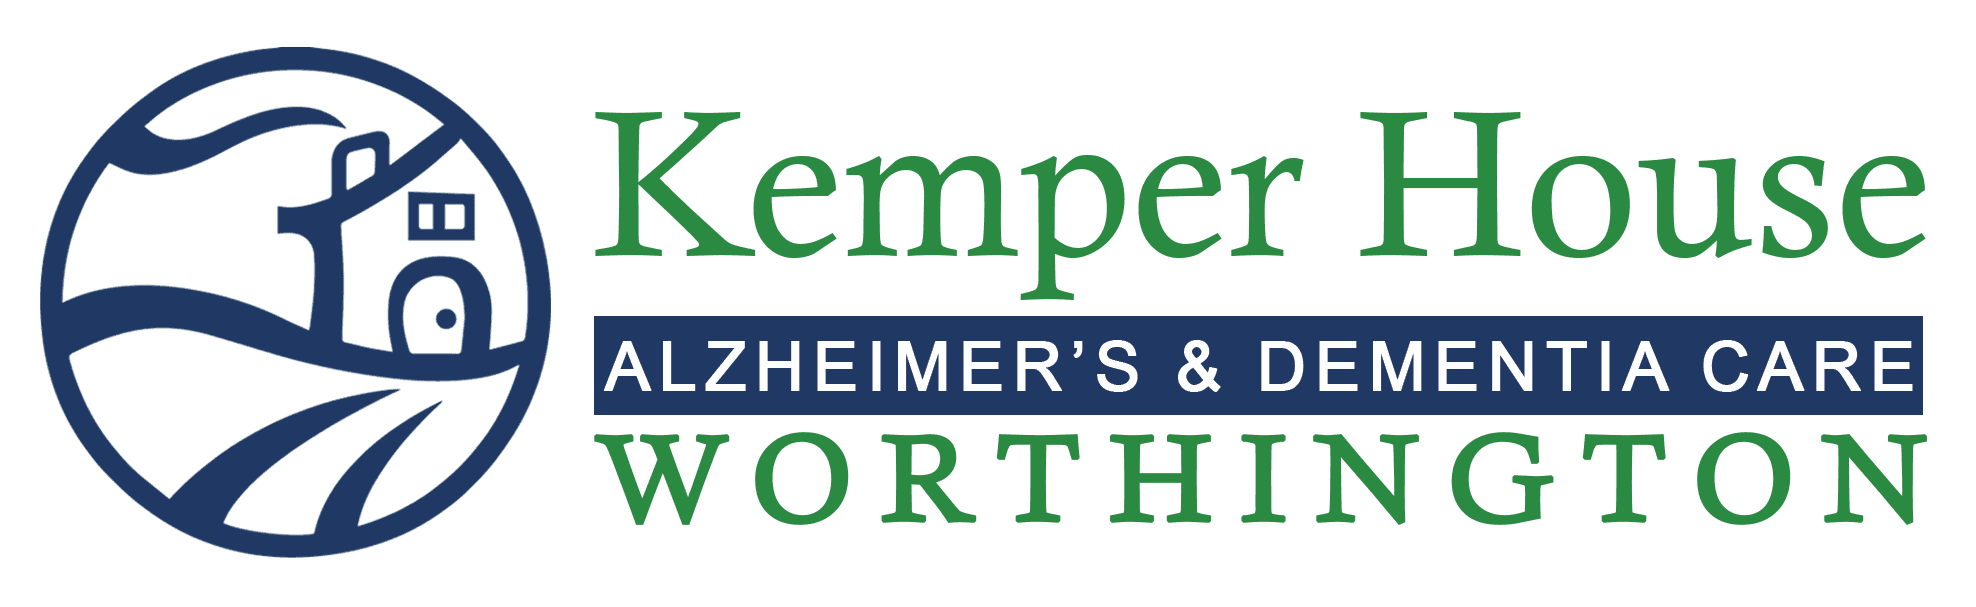 Kemper House Logo Worthington Big 1 (BOLD) (006)